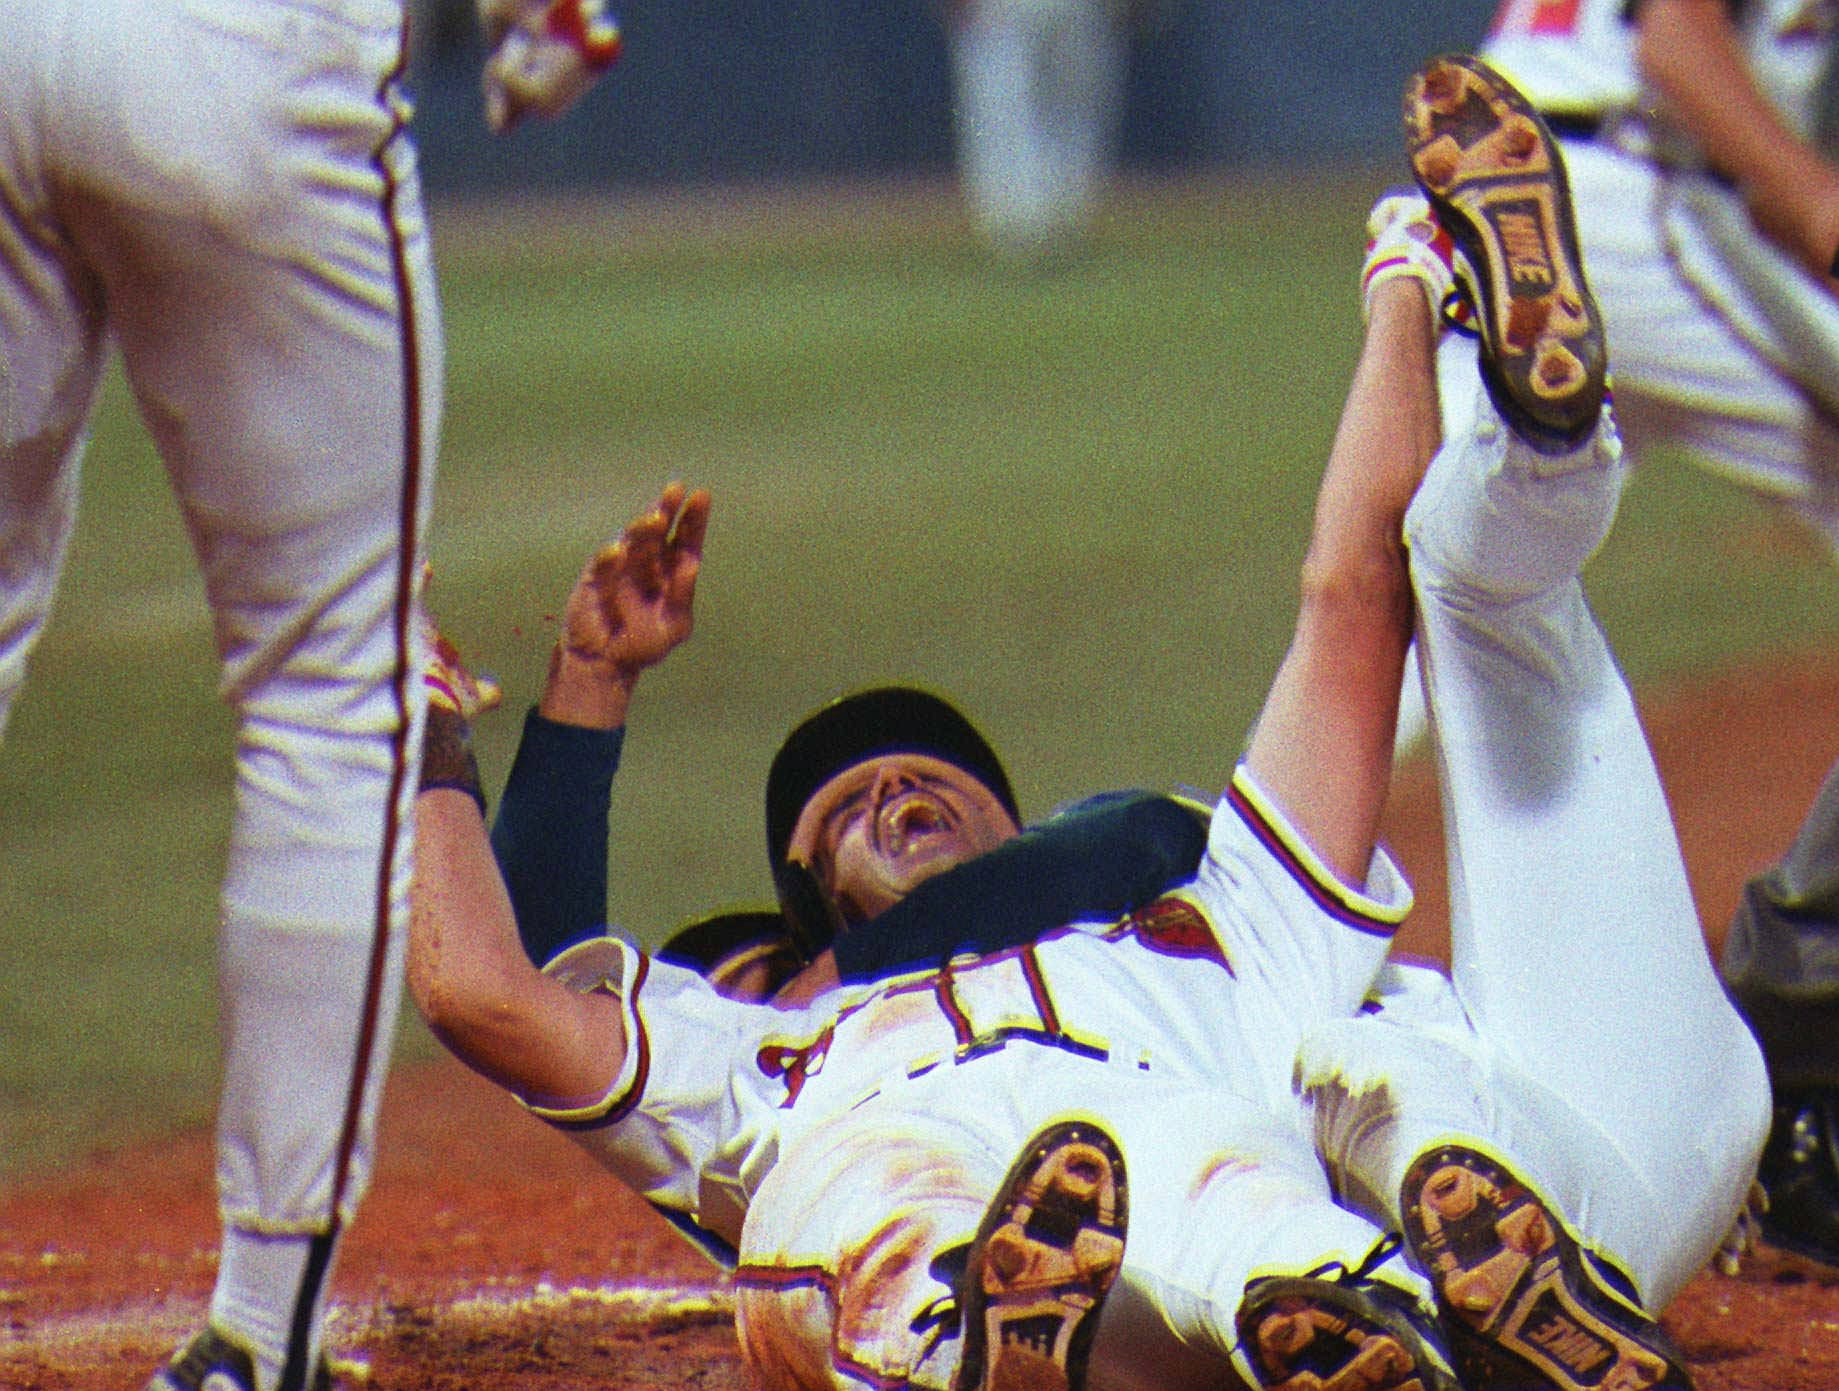 1992 NLCS Game 7: Francisco Cabrera's RBI single scored Sid Bream, completing Atlanta's comeback in the bottom of the ninth to send the Braves to the World Series.